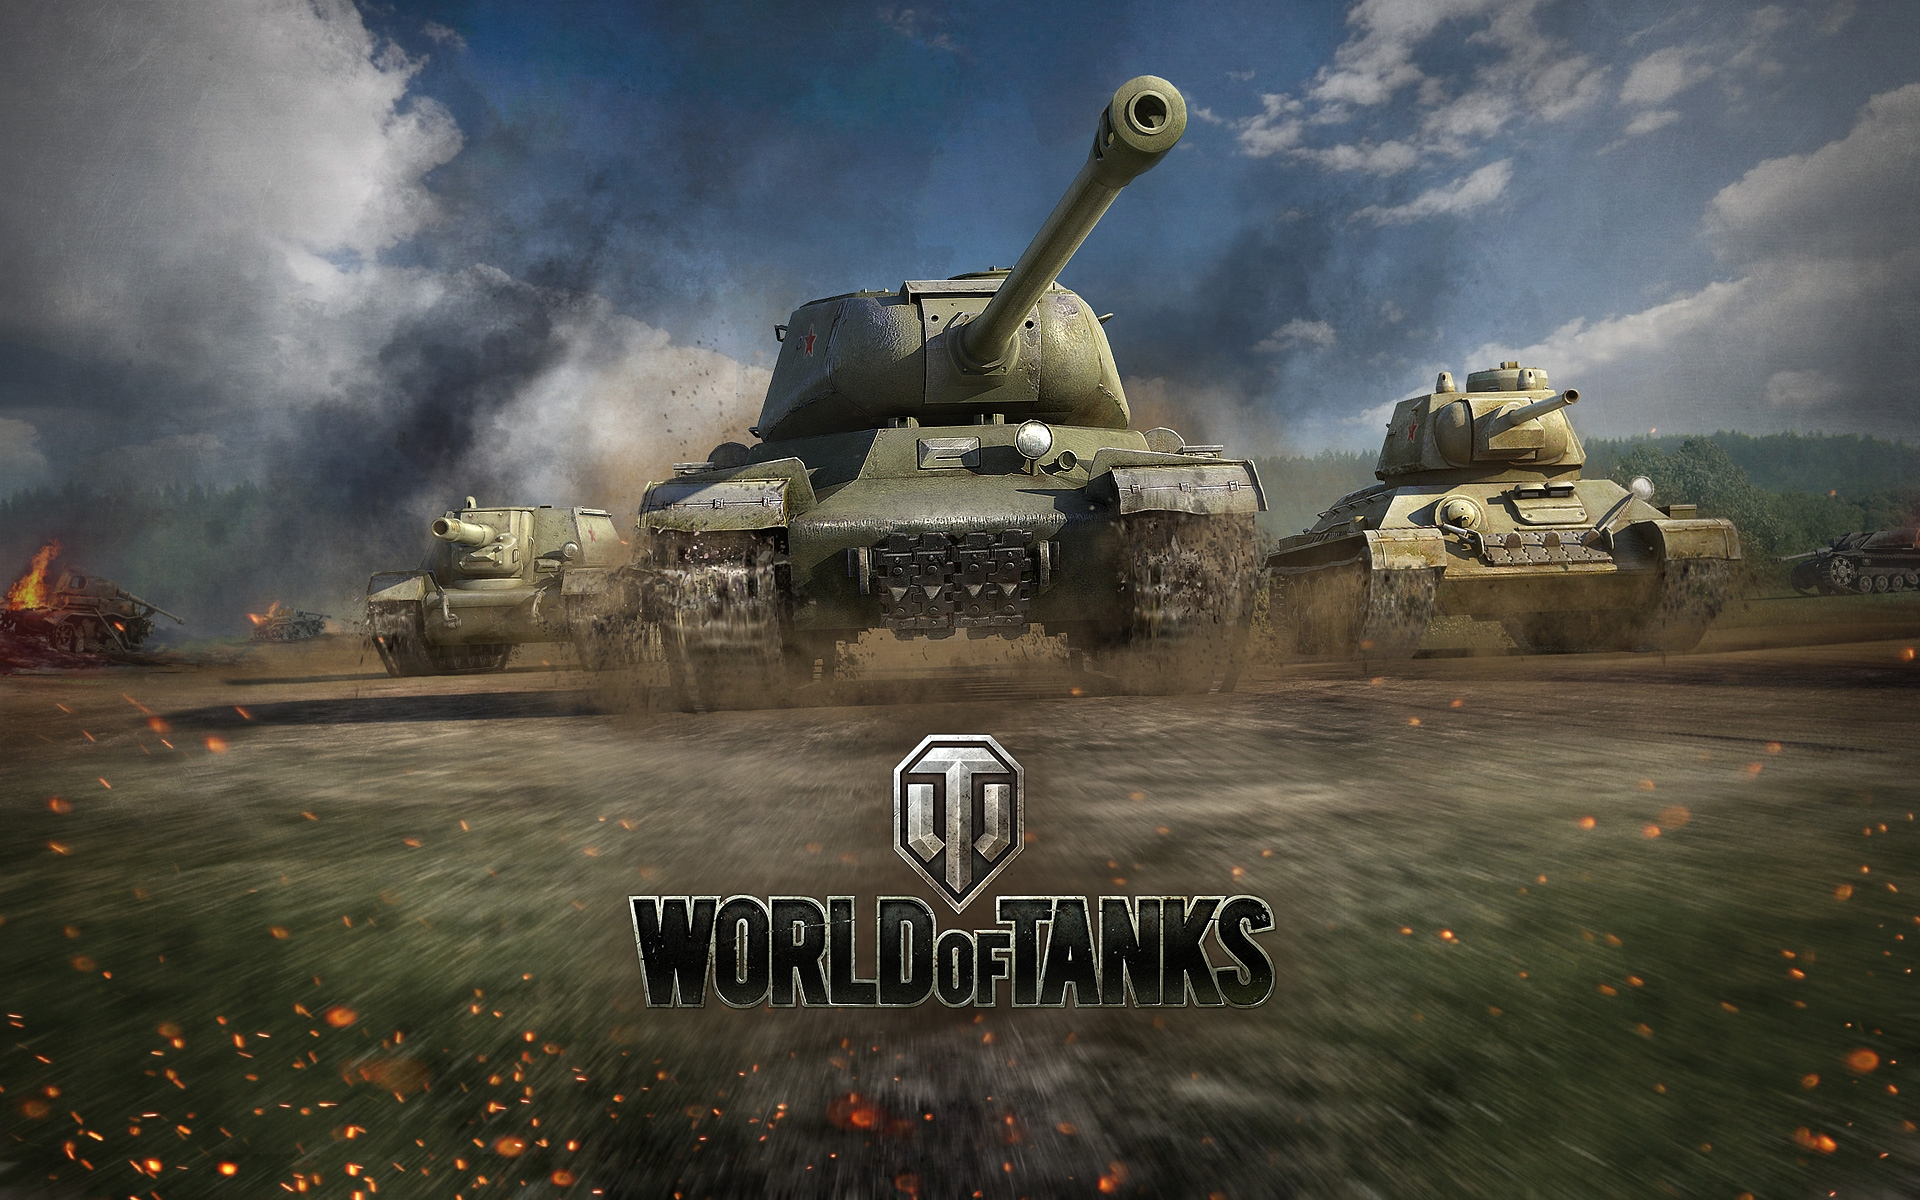 C world of tank игра gameplay 2019